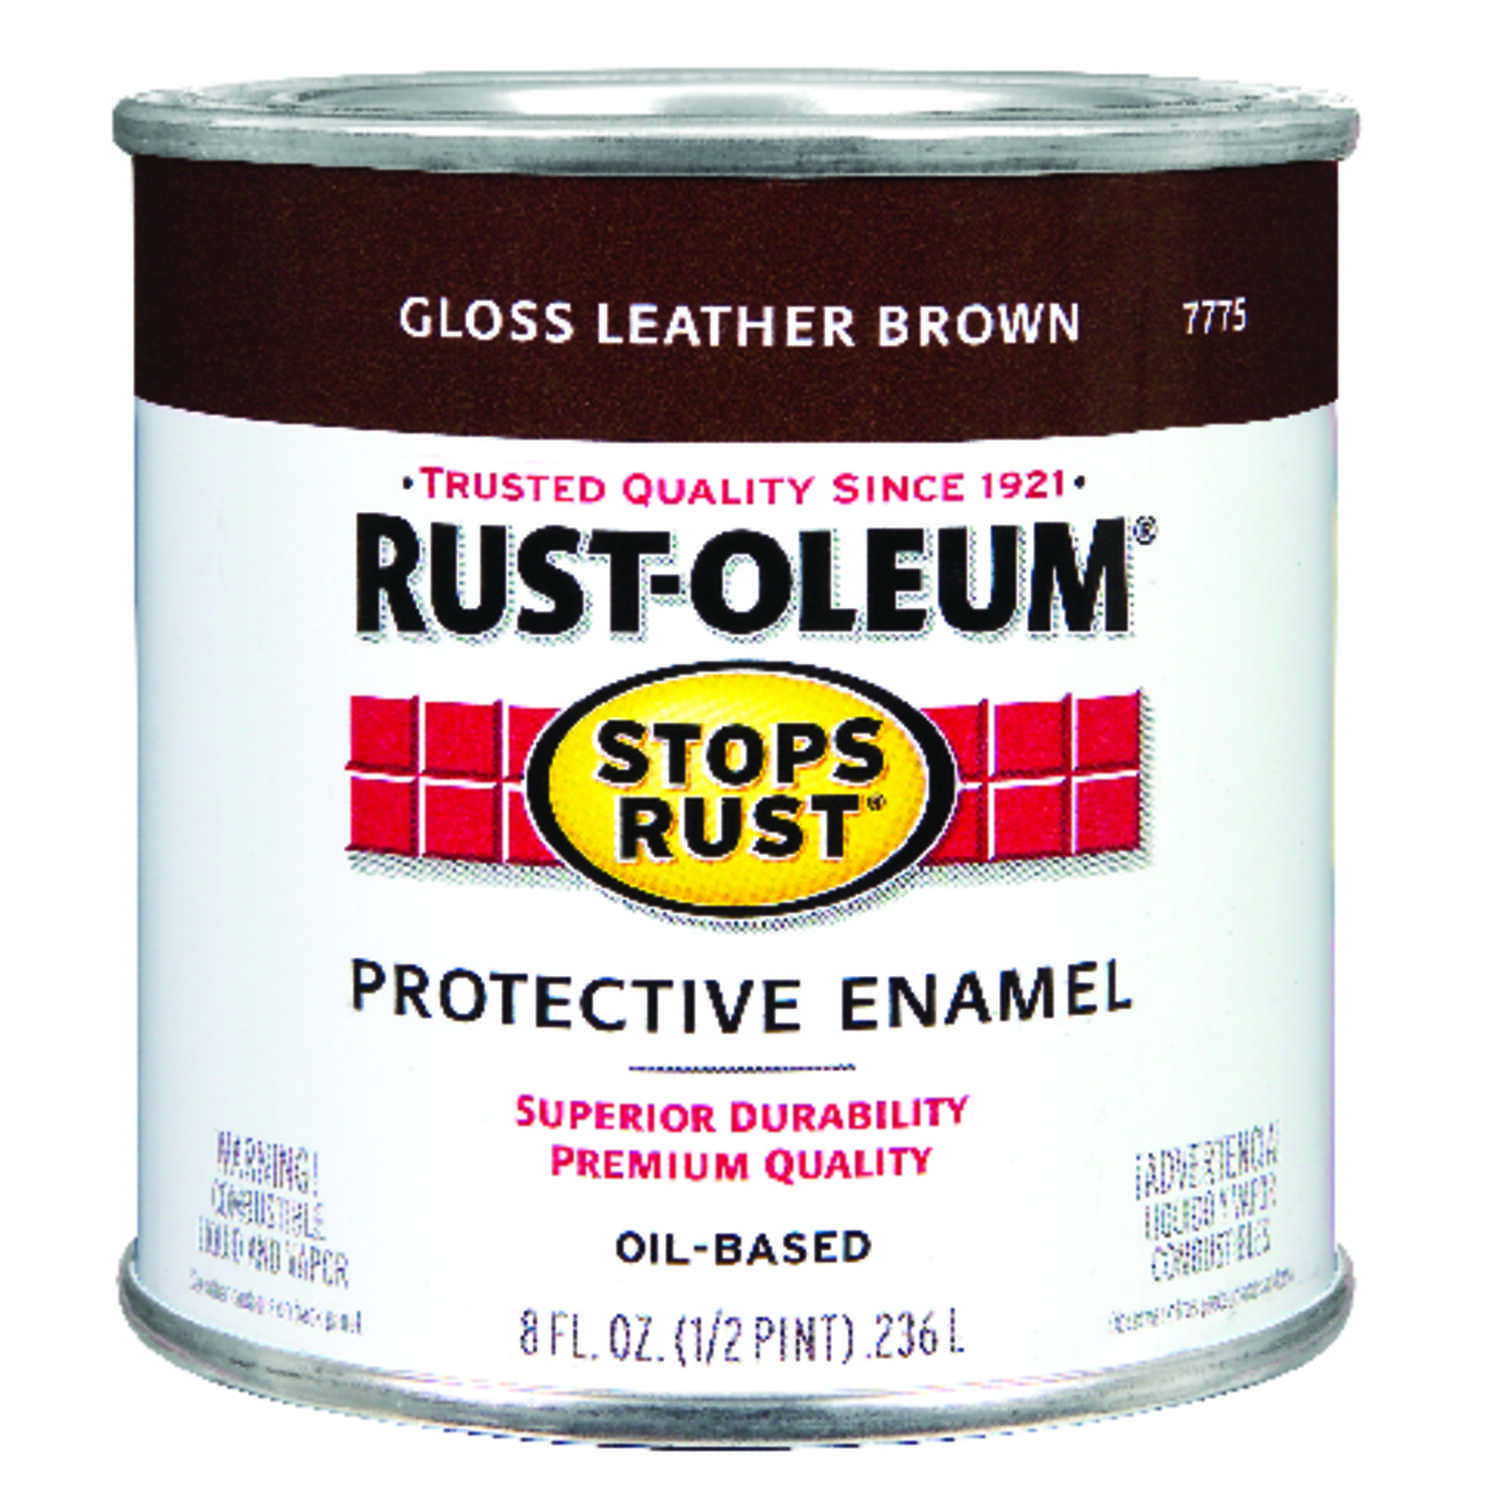 Rust-Oleum  Gloss  Leather Brown  Indoor and Outdoor  Protective Enamel  0.5 pt.